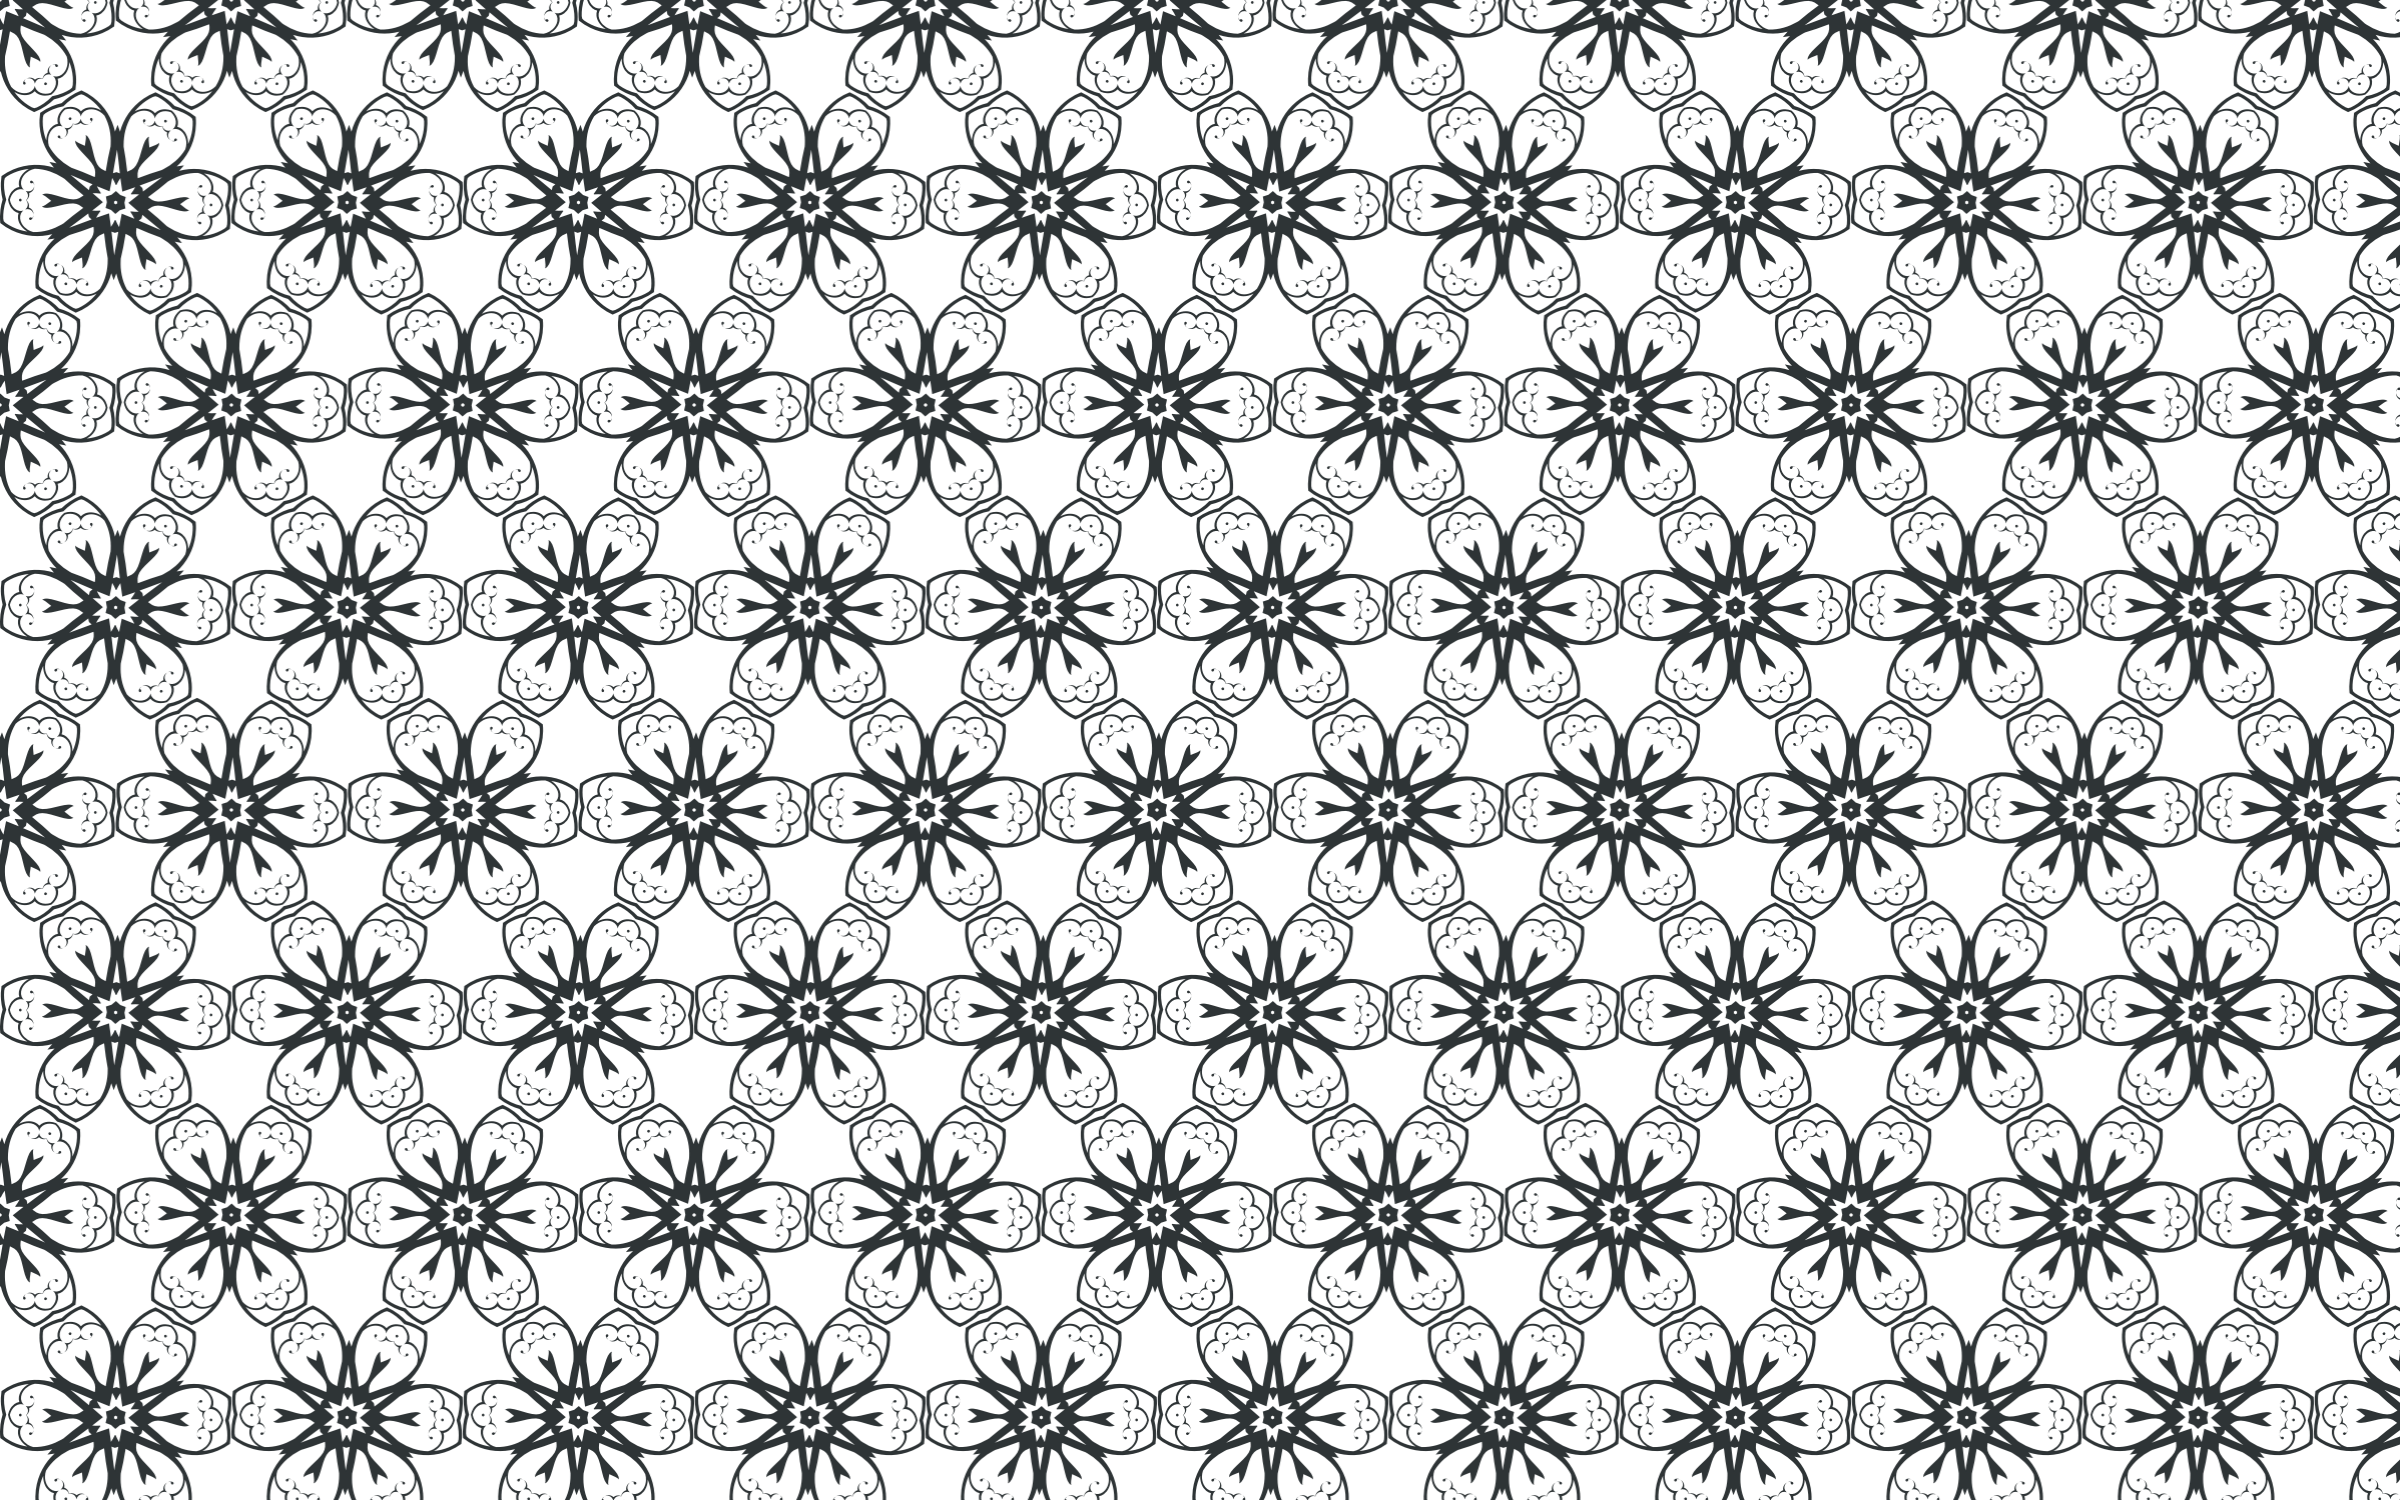 Silhouette Flourish Seamless Pattern by GDJ